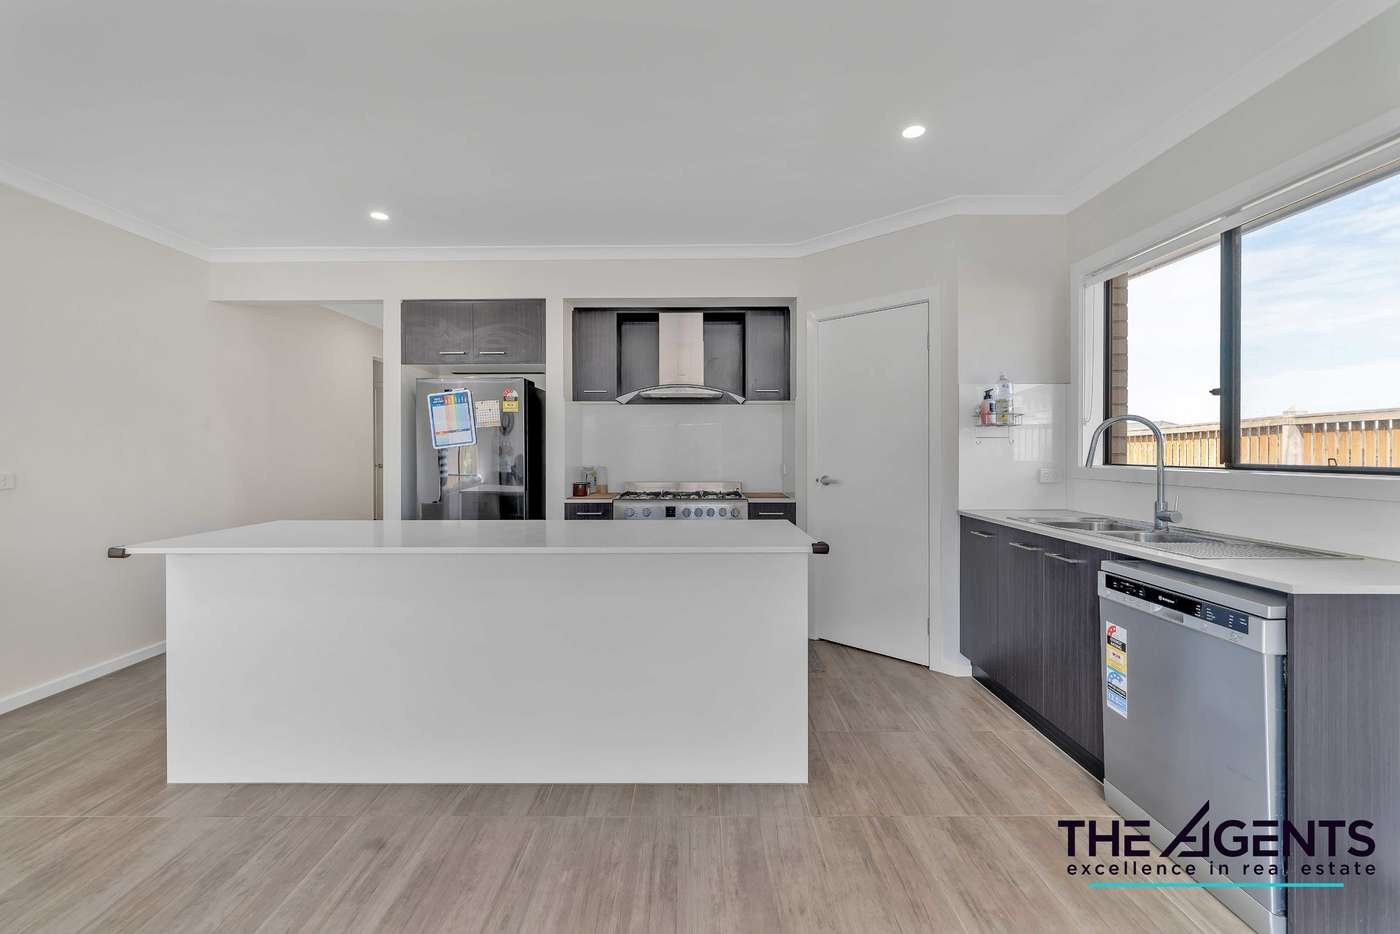 Sixth view of Homely house listing, 57 Brightvale Bvd, Wyndham Vale VIC 3024